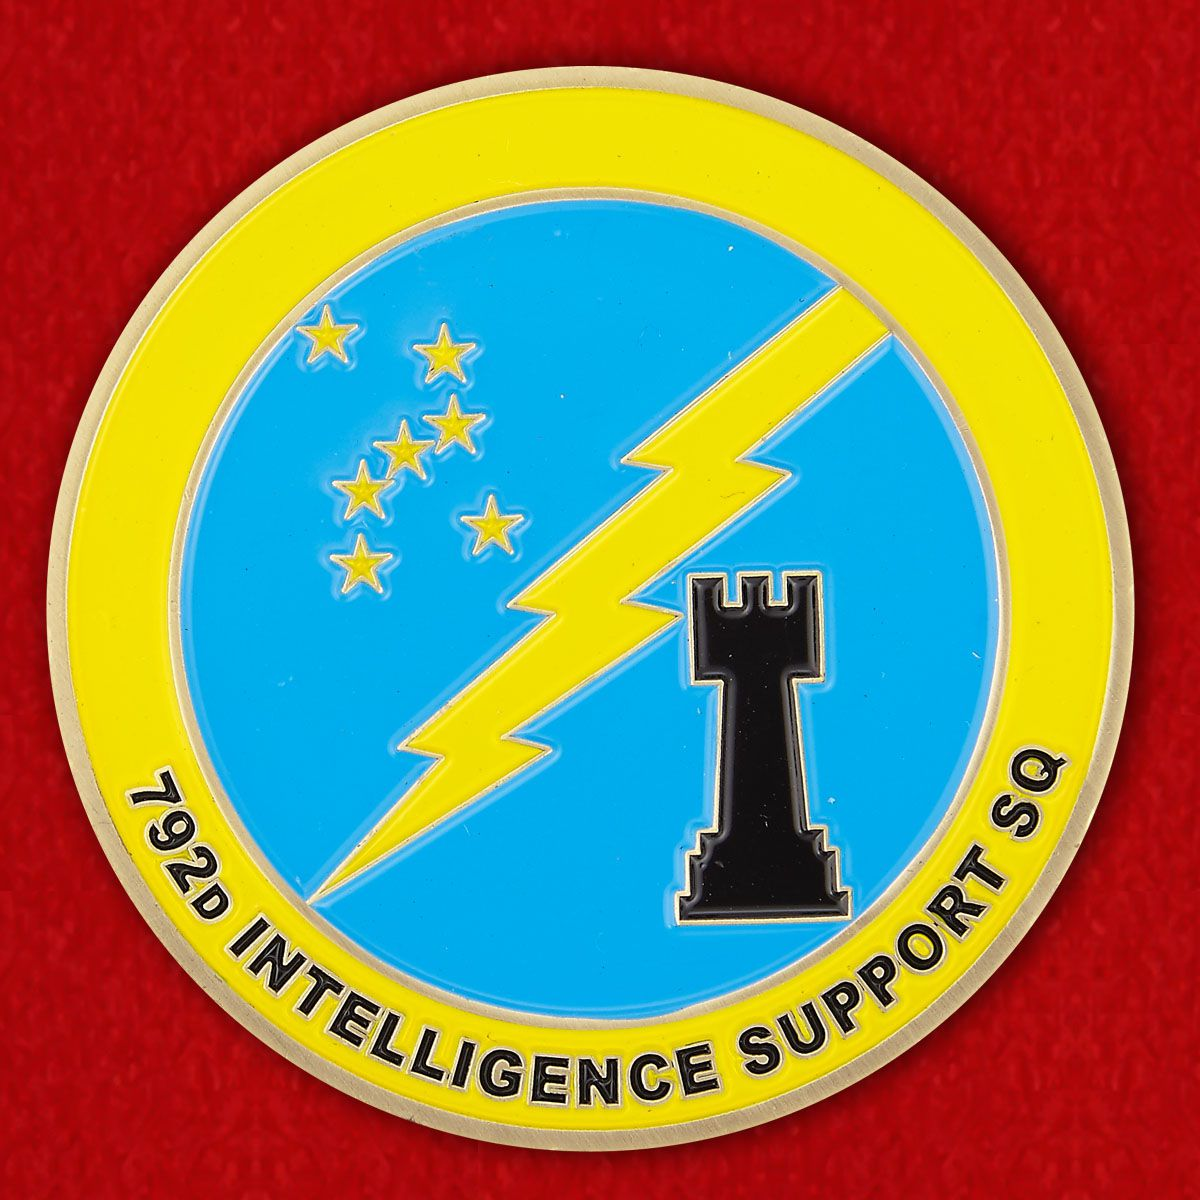 782D Intelligence Support, SQ Challenge Сoin